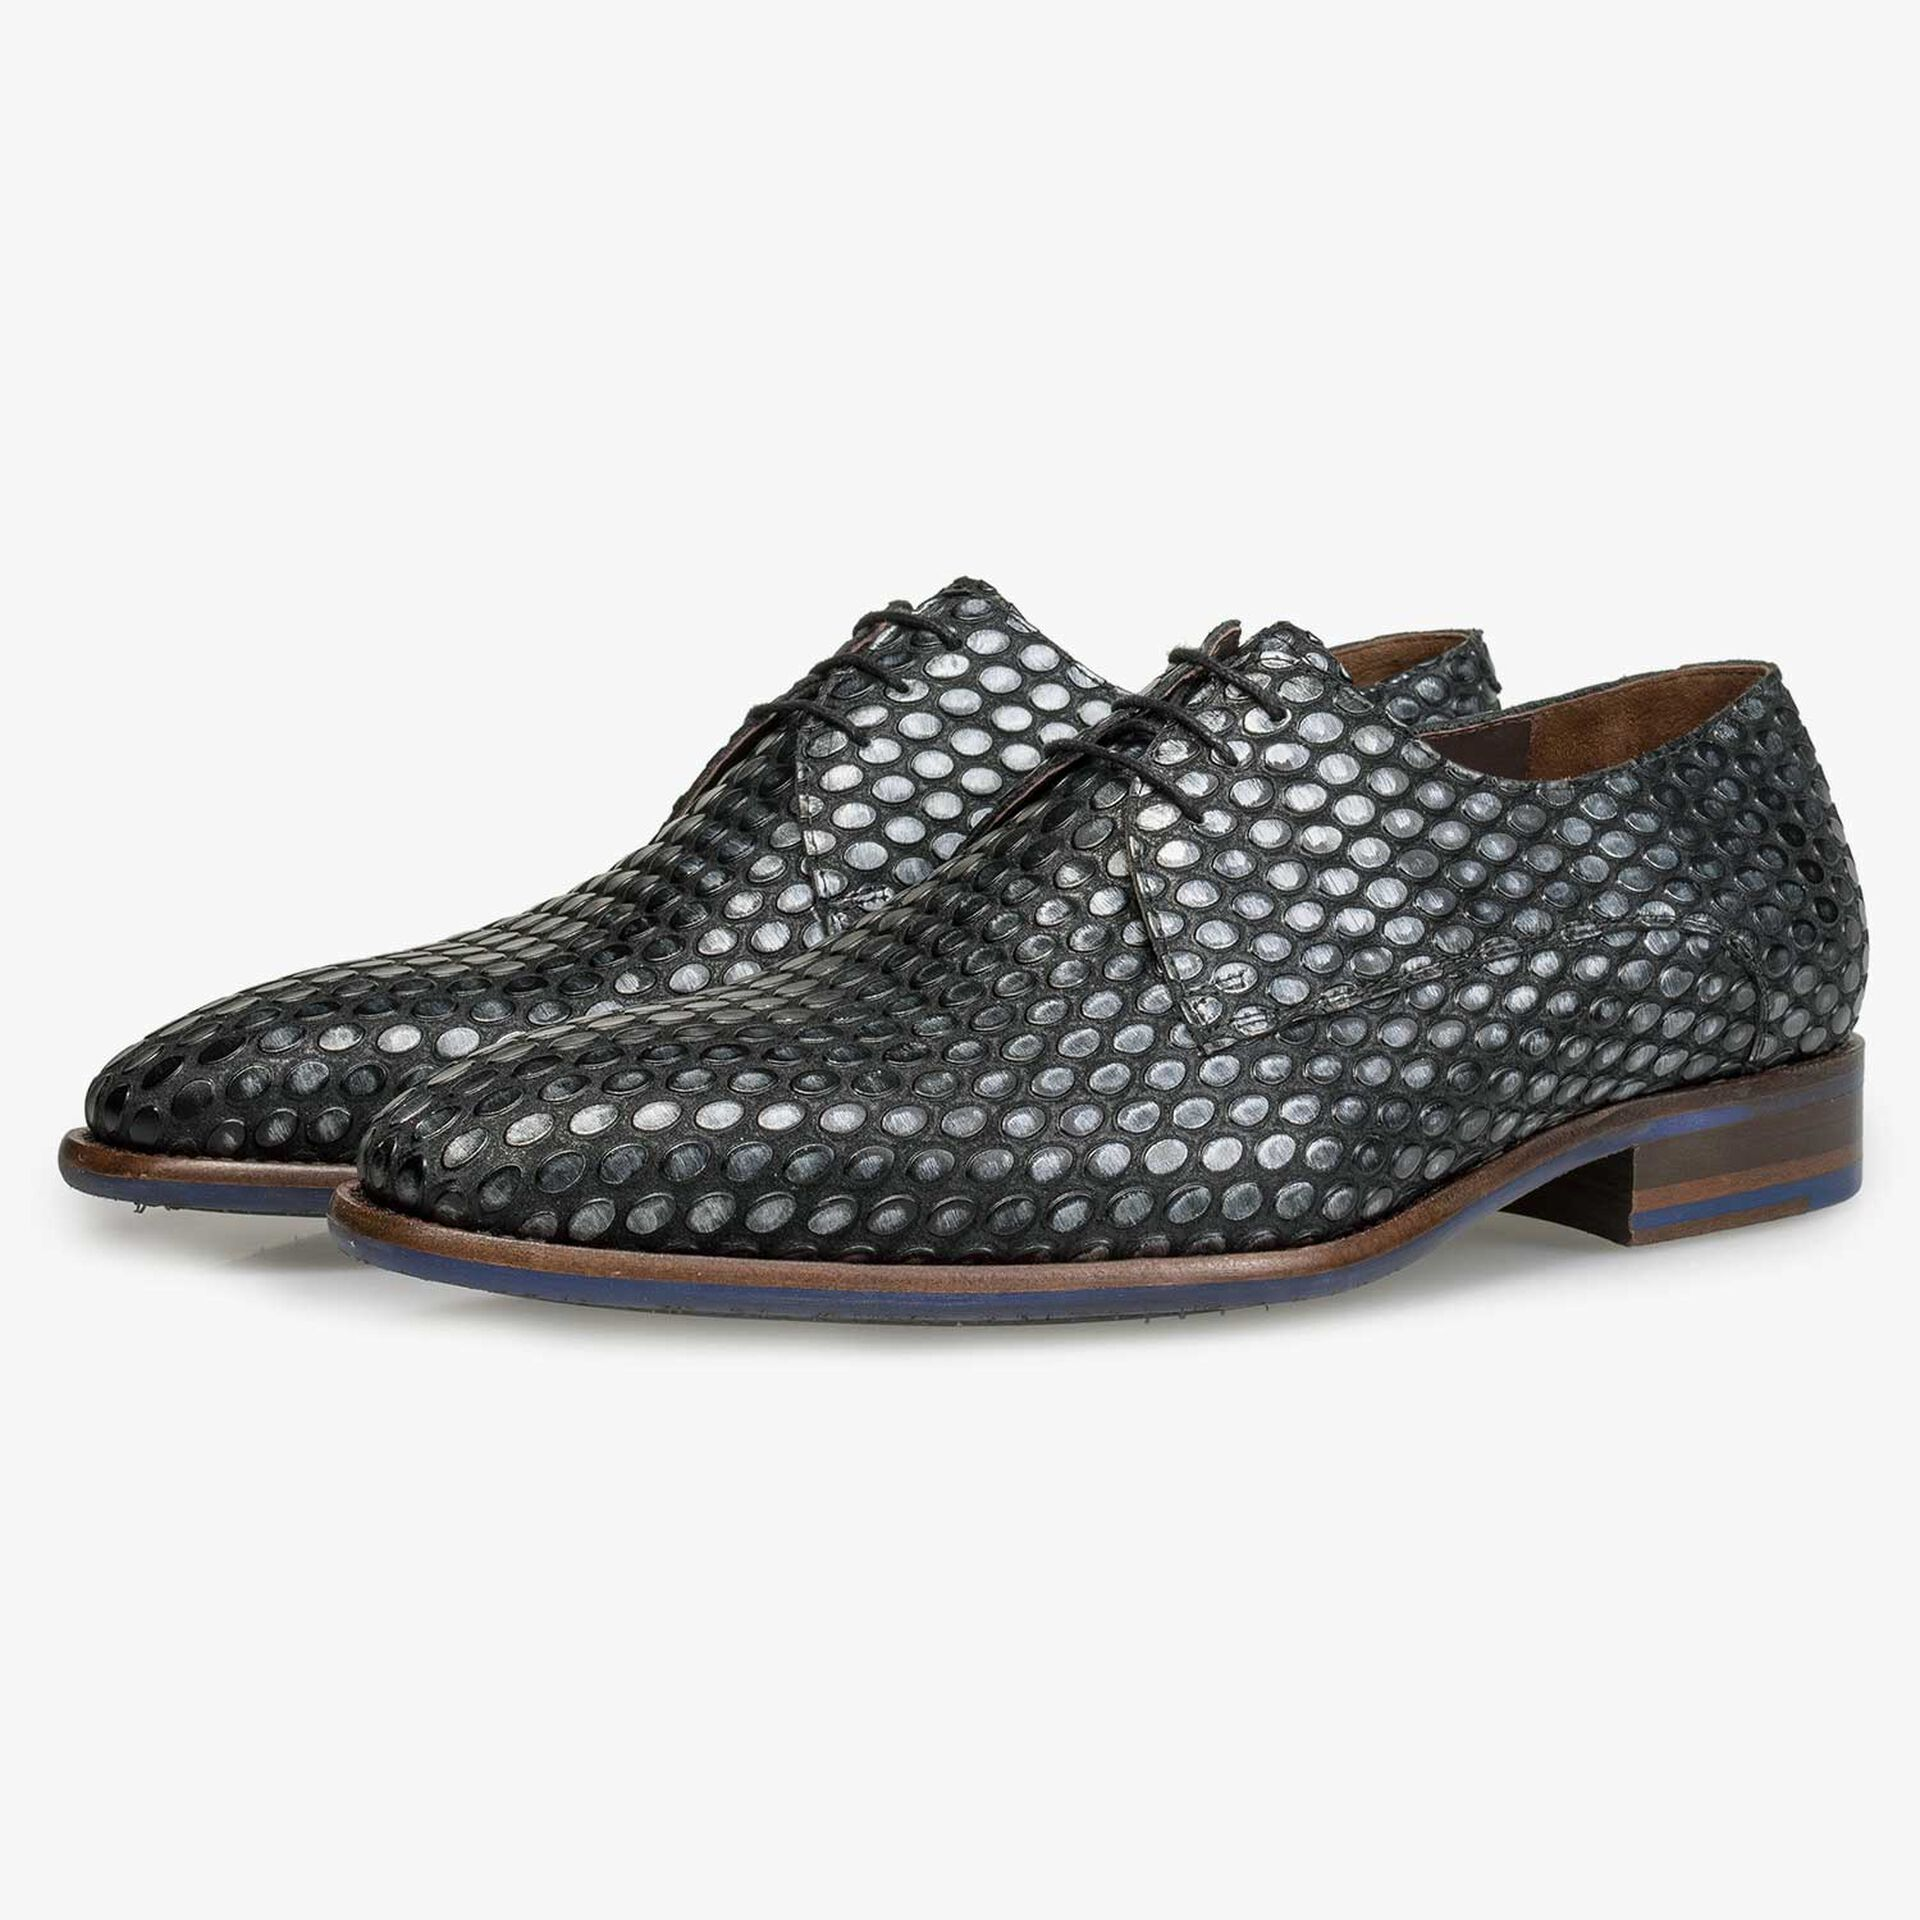 Silver-coloured leather lace shoe with coffee bean print